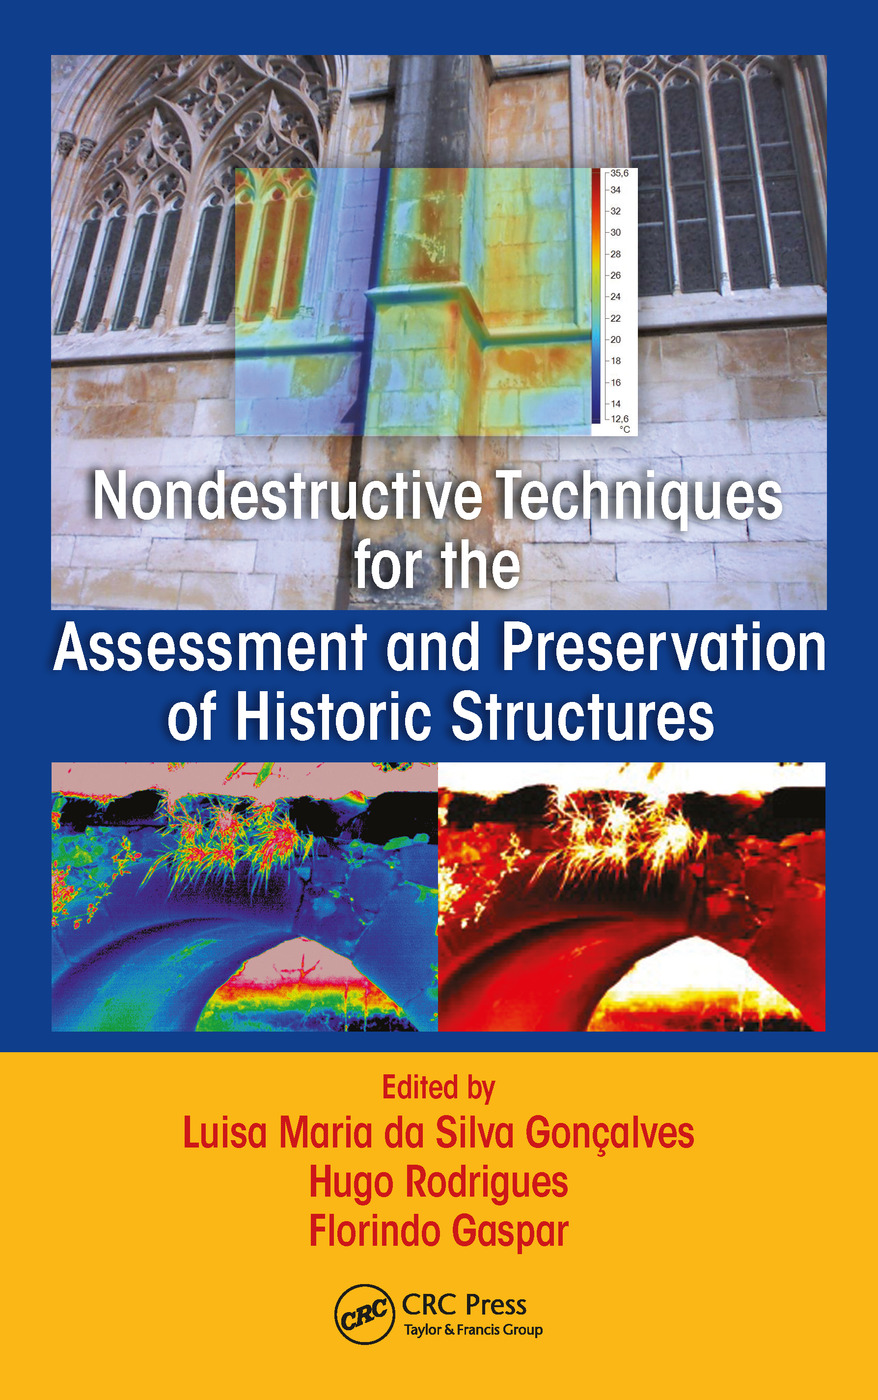 Nondestructive Techniques for the Assessment and Preservation of Existent Constructions